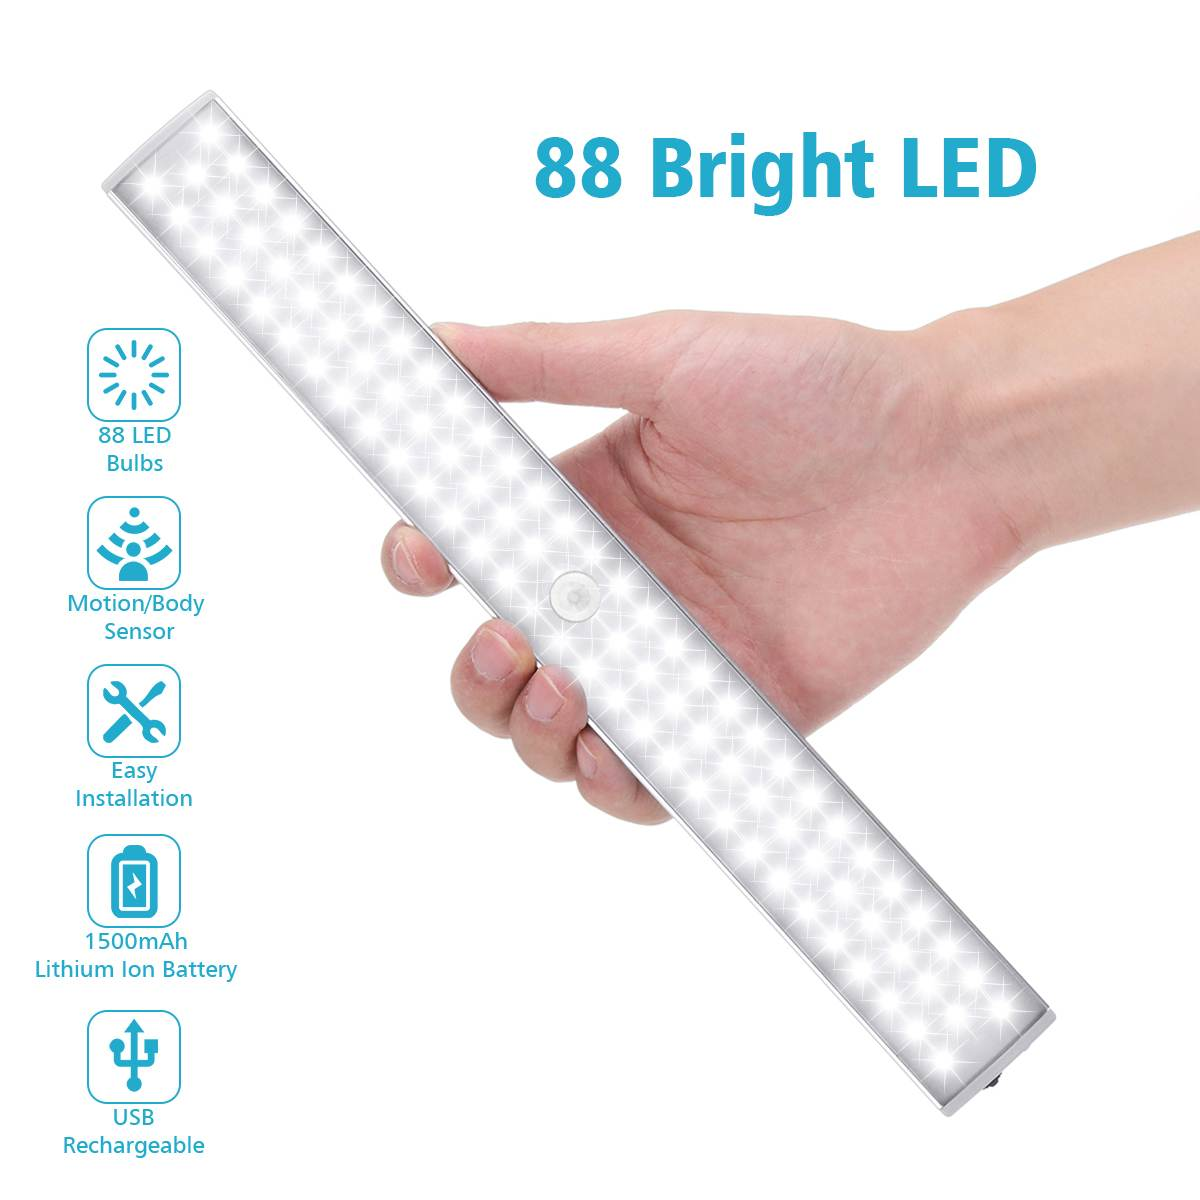 Cabinet Lamps USB Rechargeable 88 LED Night Lights Human body induction Bar Light LED Tube 6500k Decora Wardrobe Kitchen LampsCabinet Lamps USB Rechargeable 88 LED Night Lights Human body induction Bar Light LED Tube 6500k Decora Wardrobe Kitchen Lamps